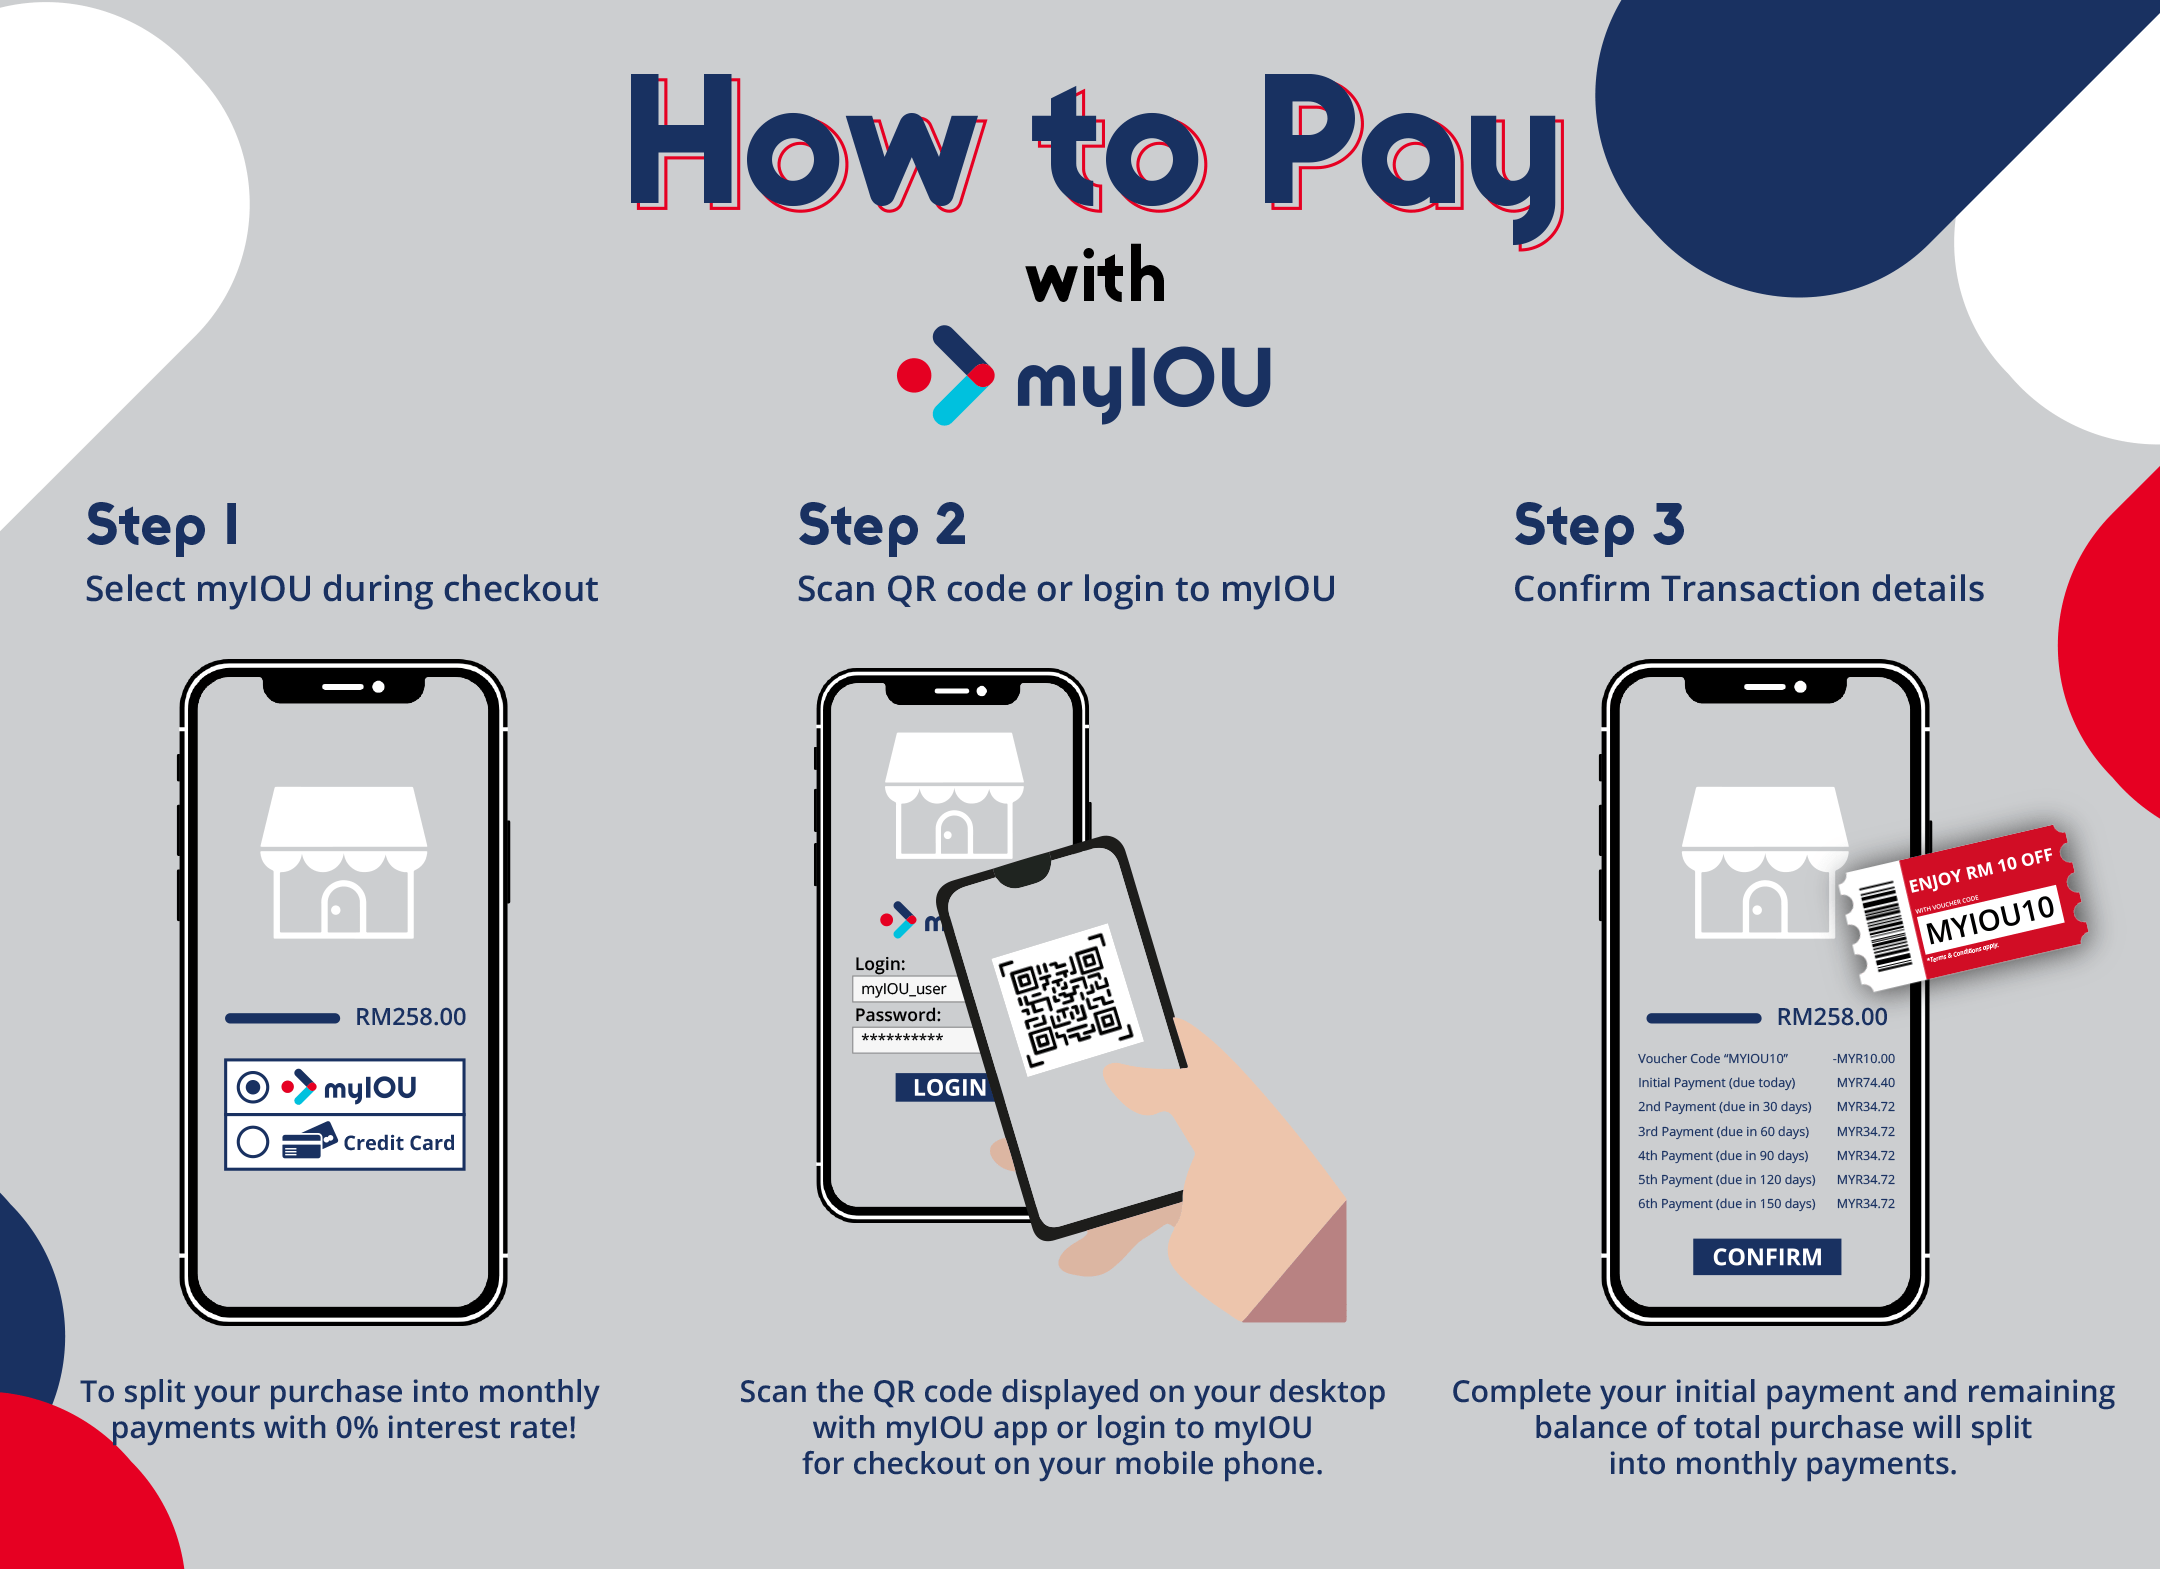 howtopay-online